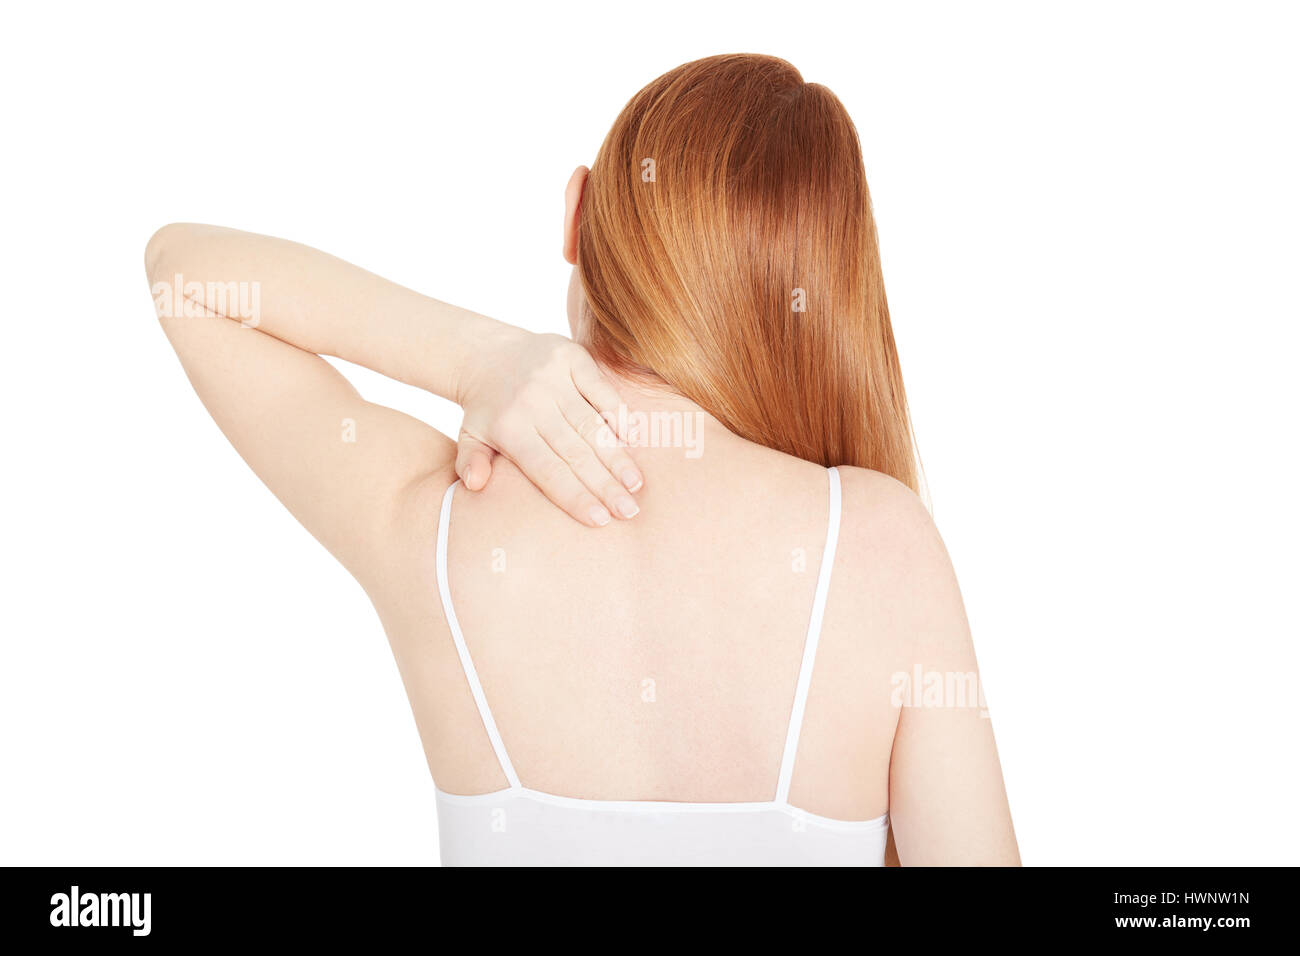 Woman with neck pain, back view isolated on white, clipping path - Stock Image